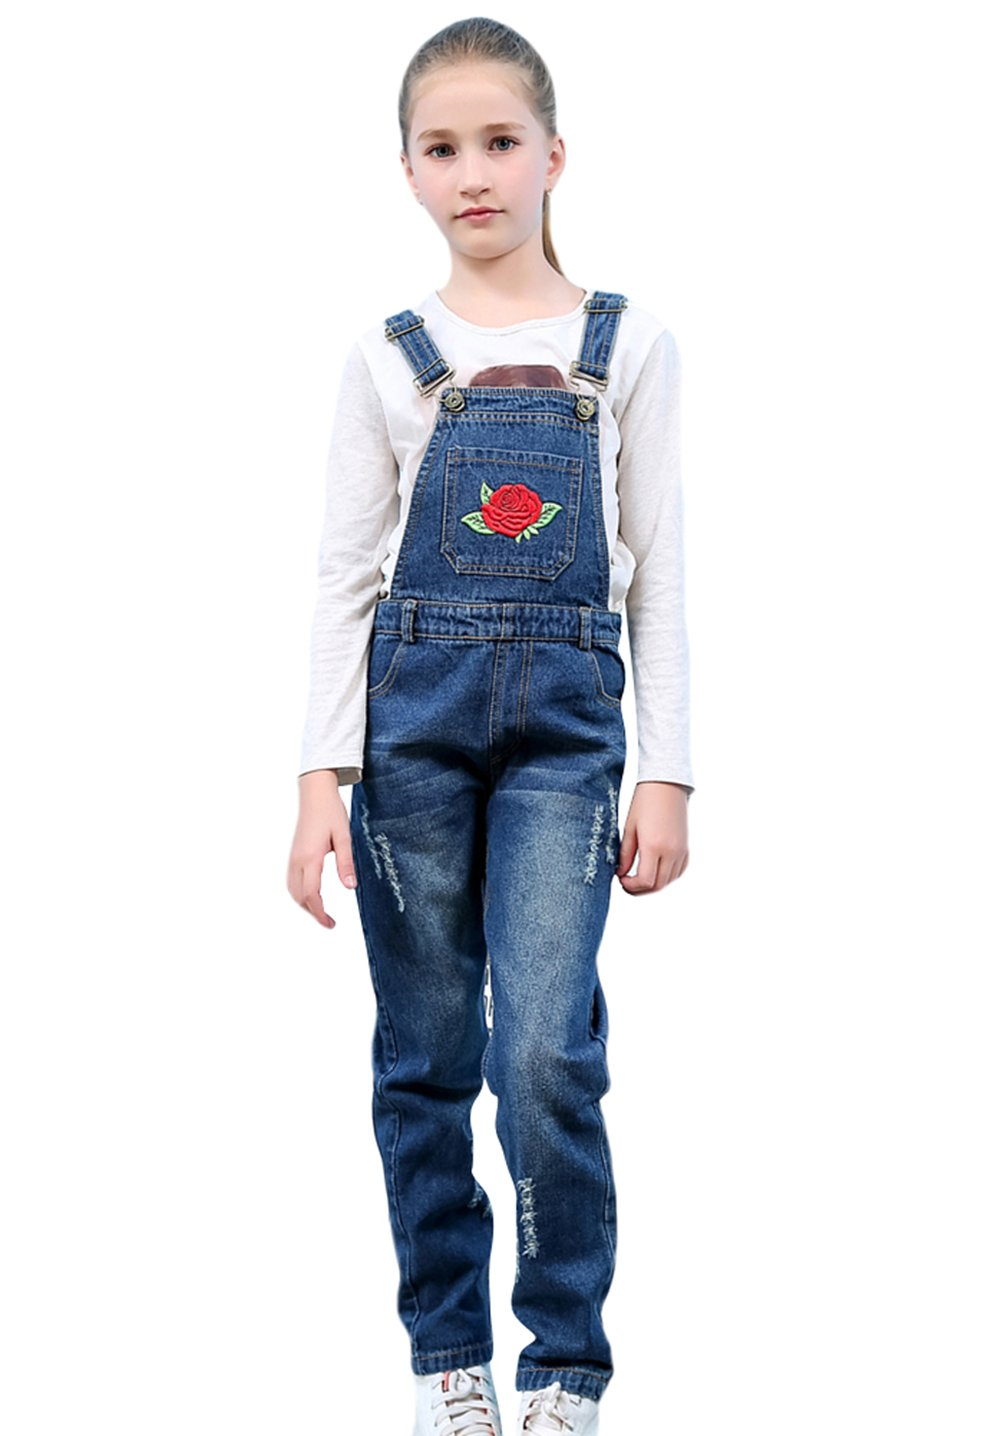 Tortor 1Bacha Kid Girls' Rose Flower Embroidered Distressed Denim Bib Overall Blue 7-8 Years